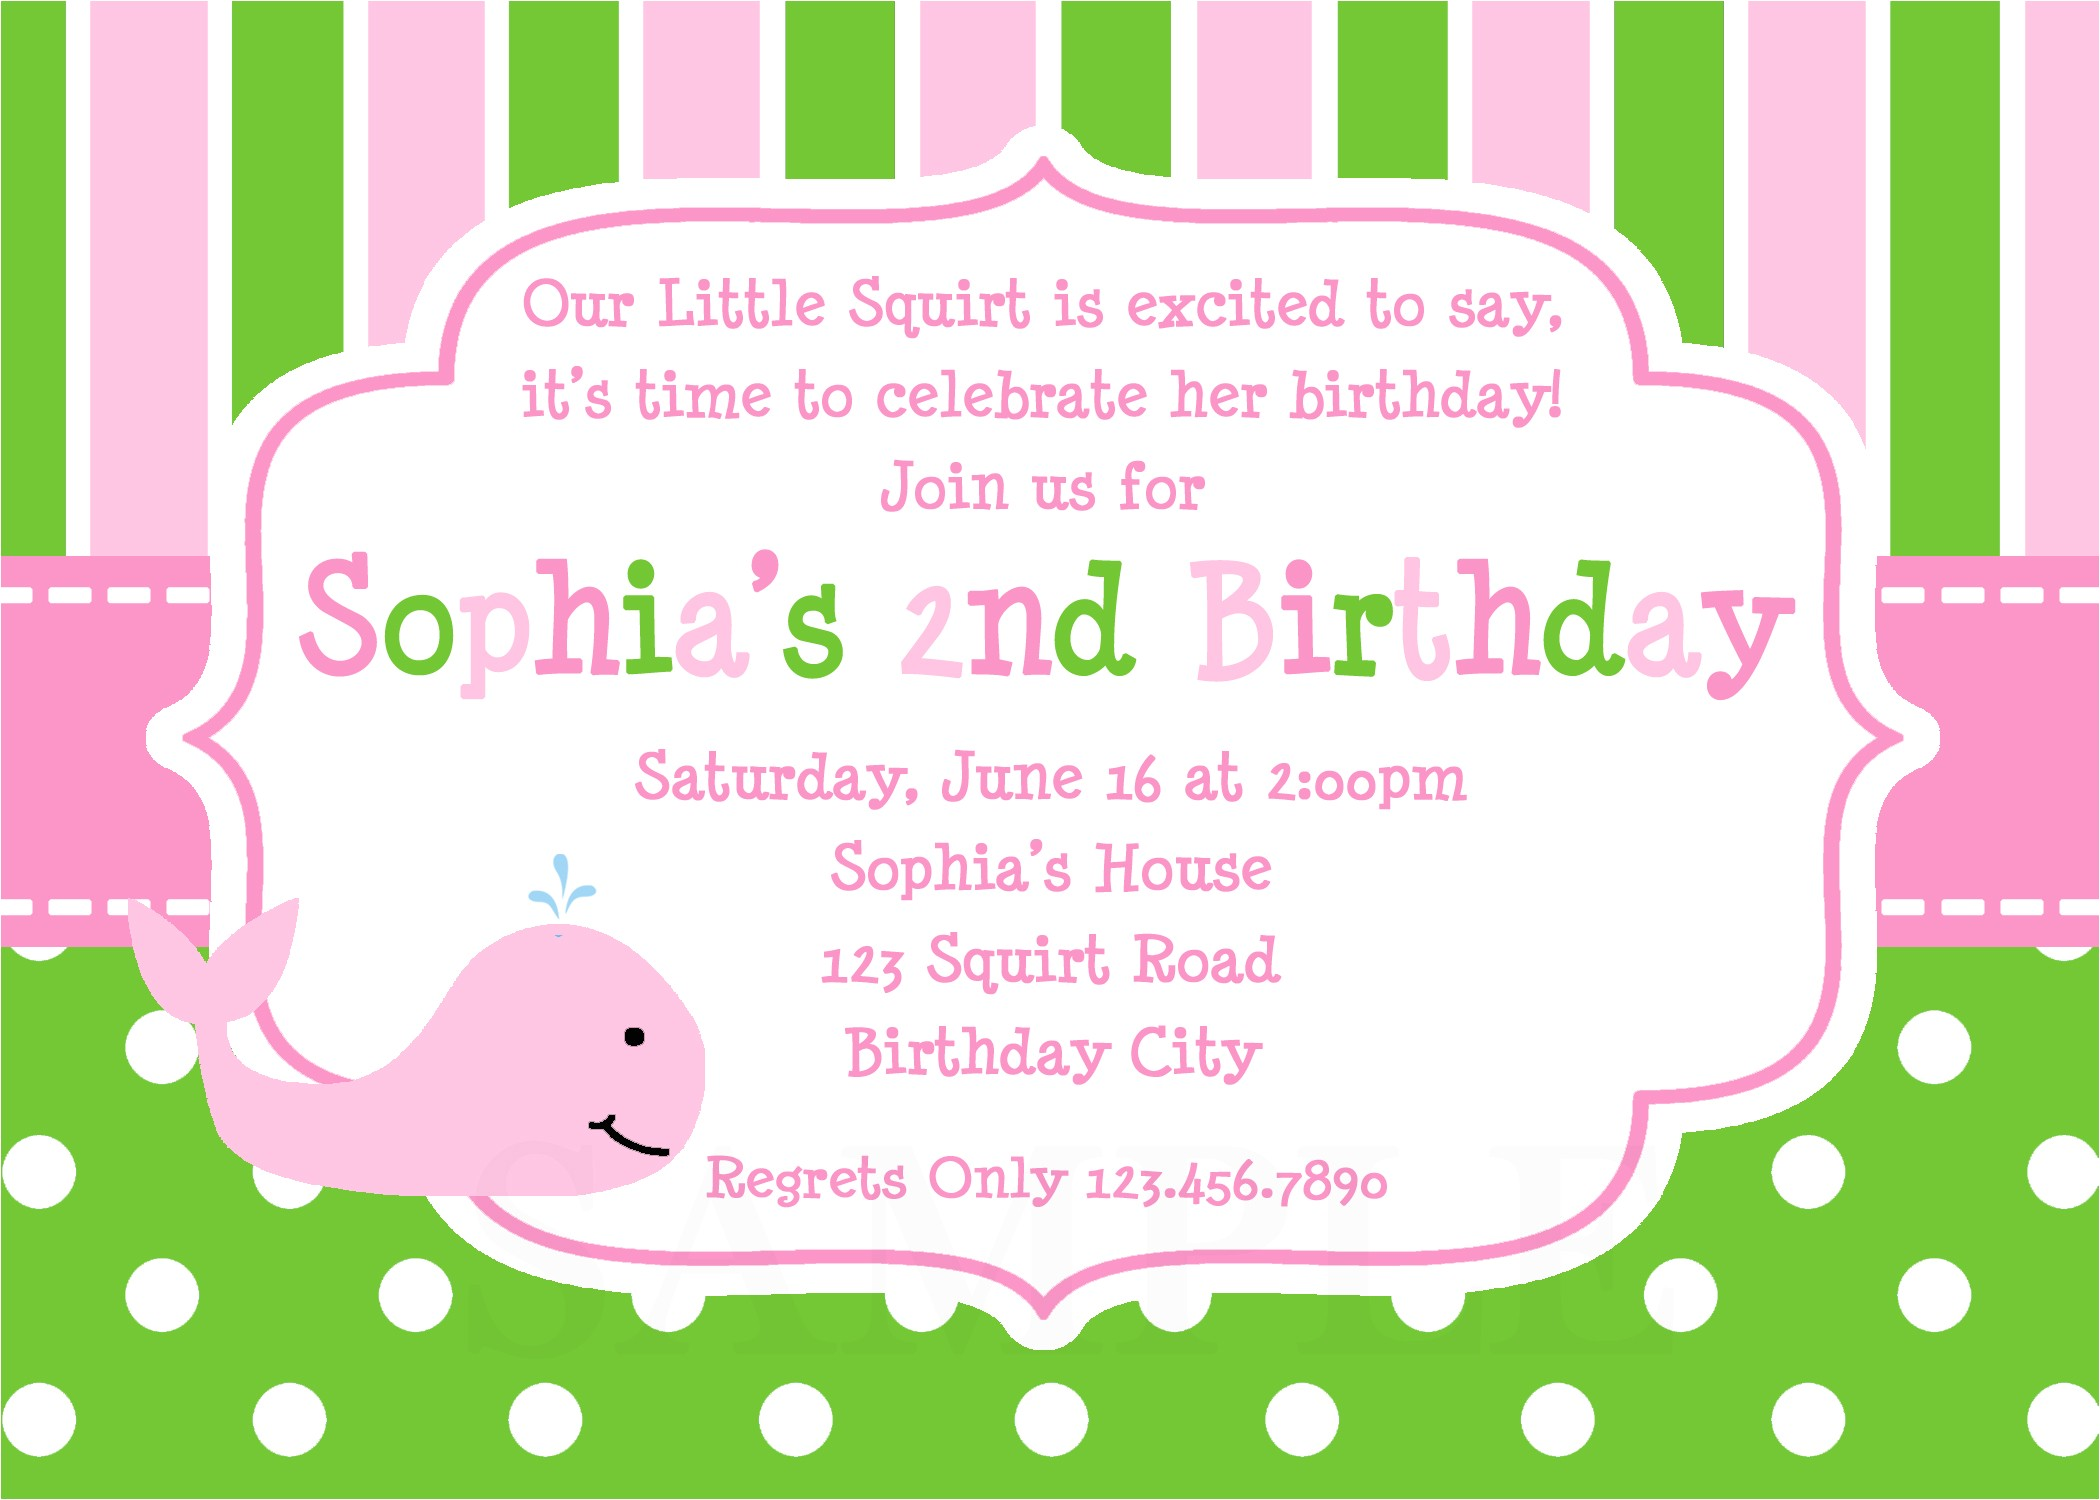 Cheap Customized Birthday Invitations Custom Birthday Invitations Cheap – Amazing Invitations Cards